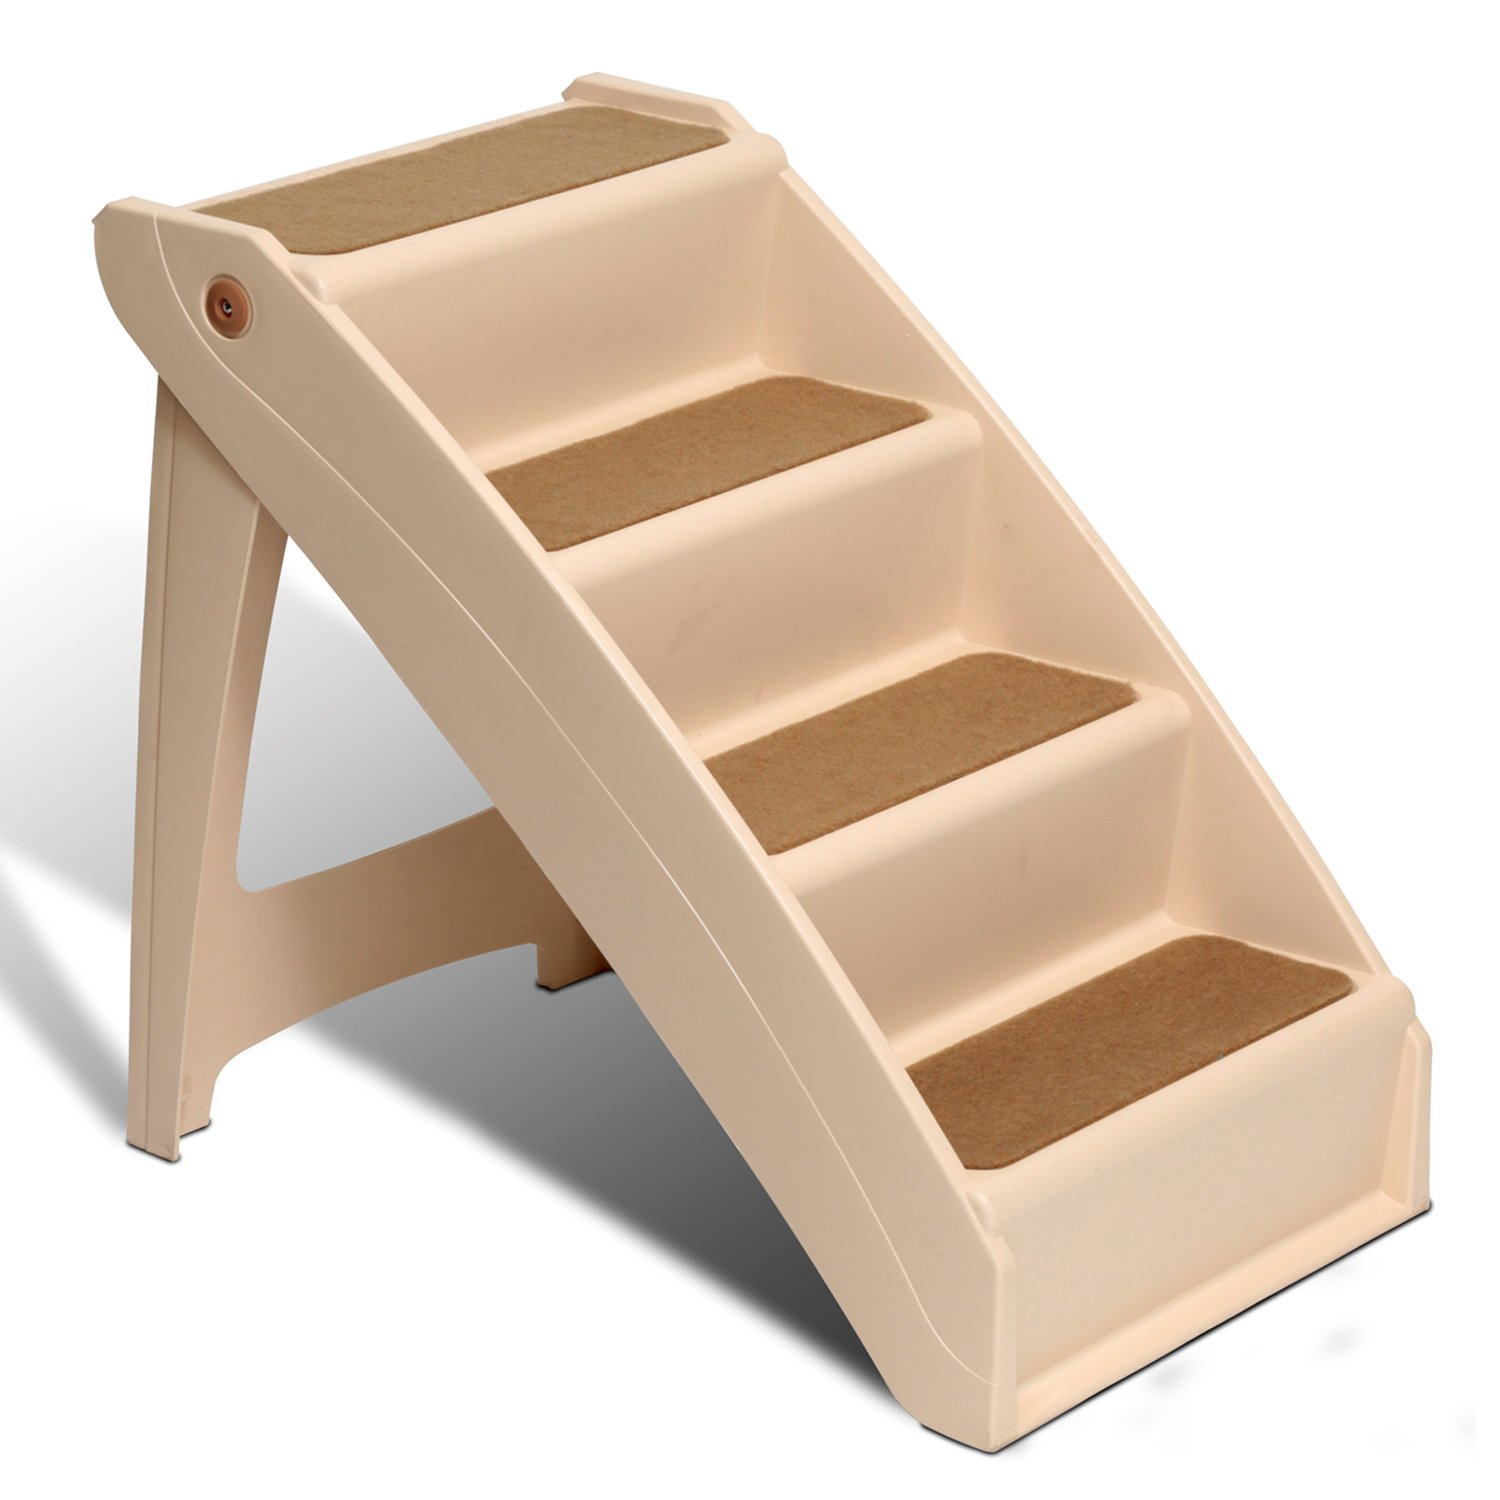 Steps For High Beds Part - 45: Solvit PupSTEP Plus XL Stairs, 28 X 18 X 25-Inch -.